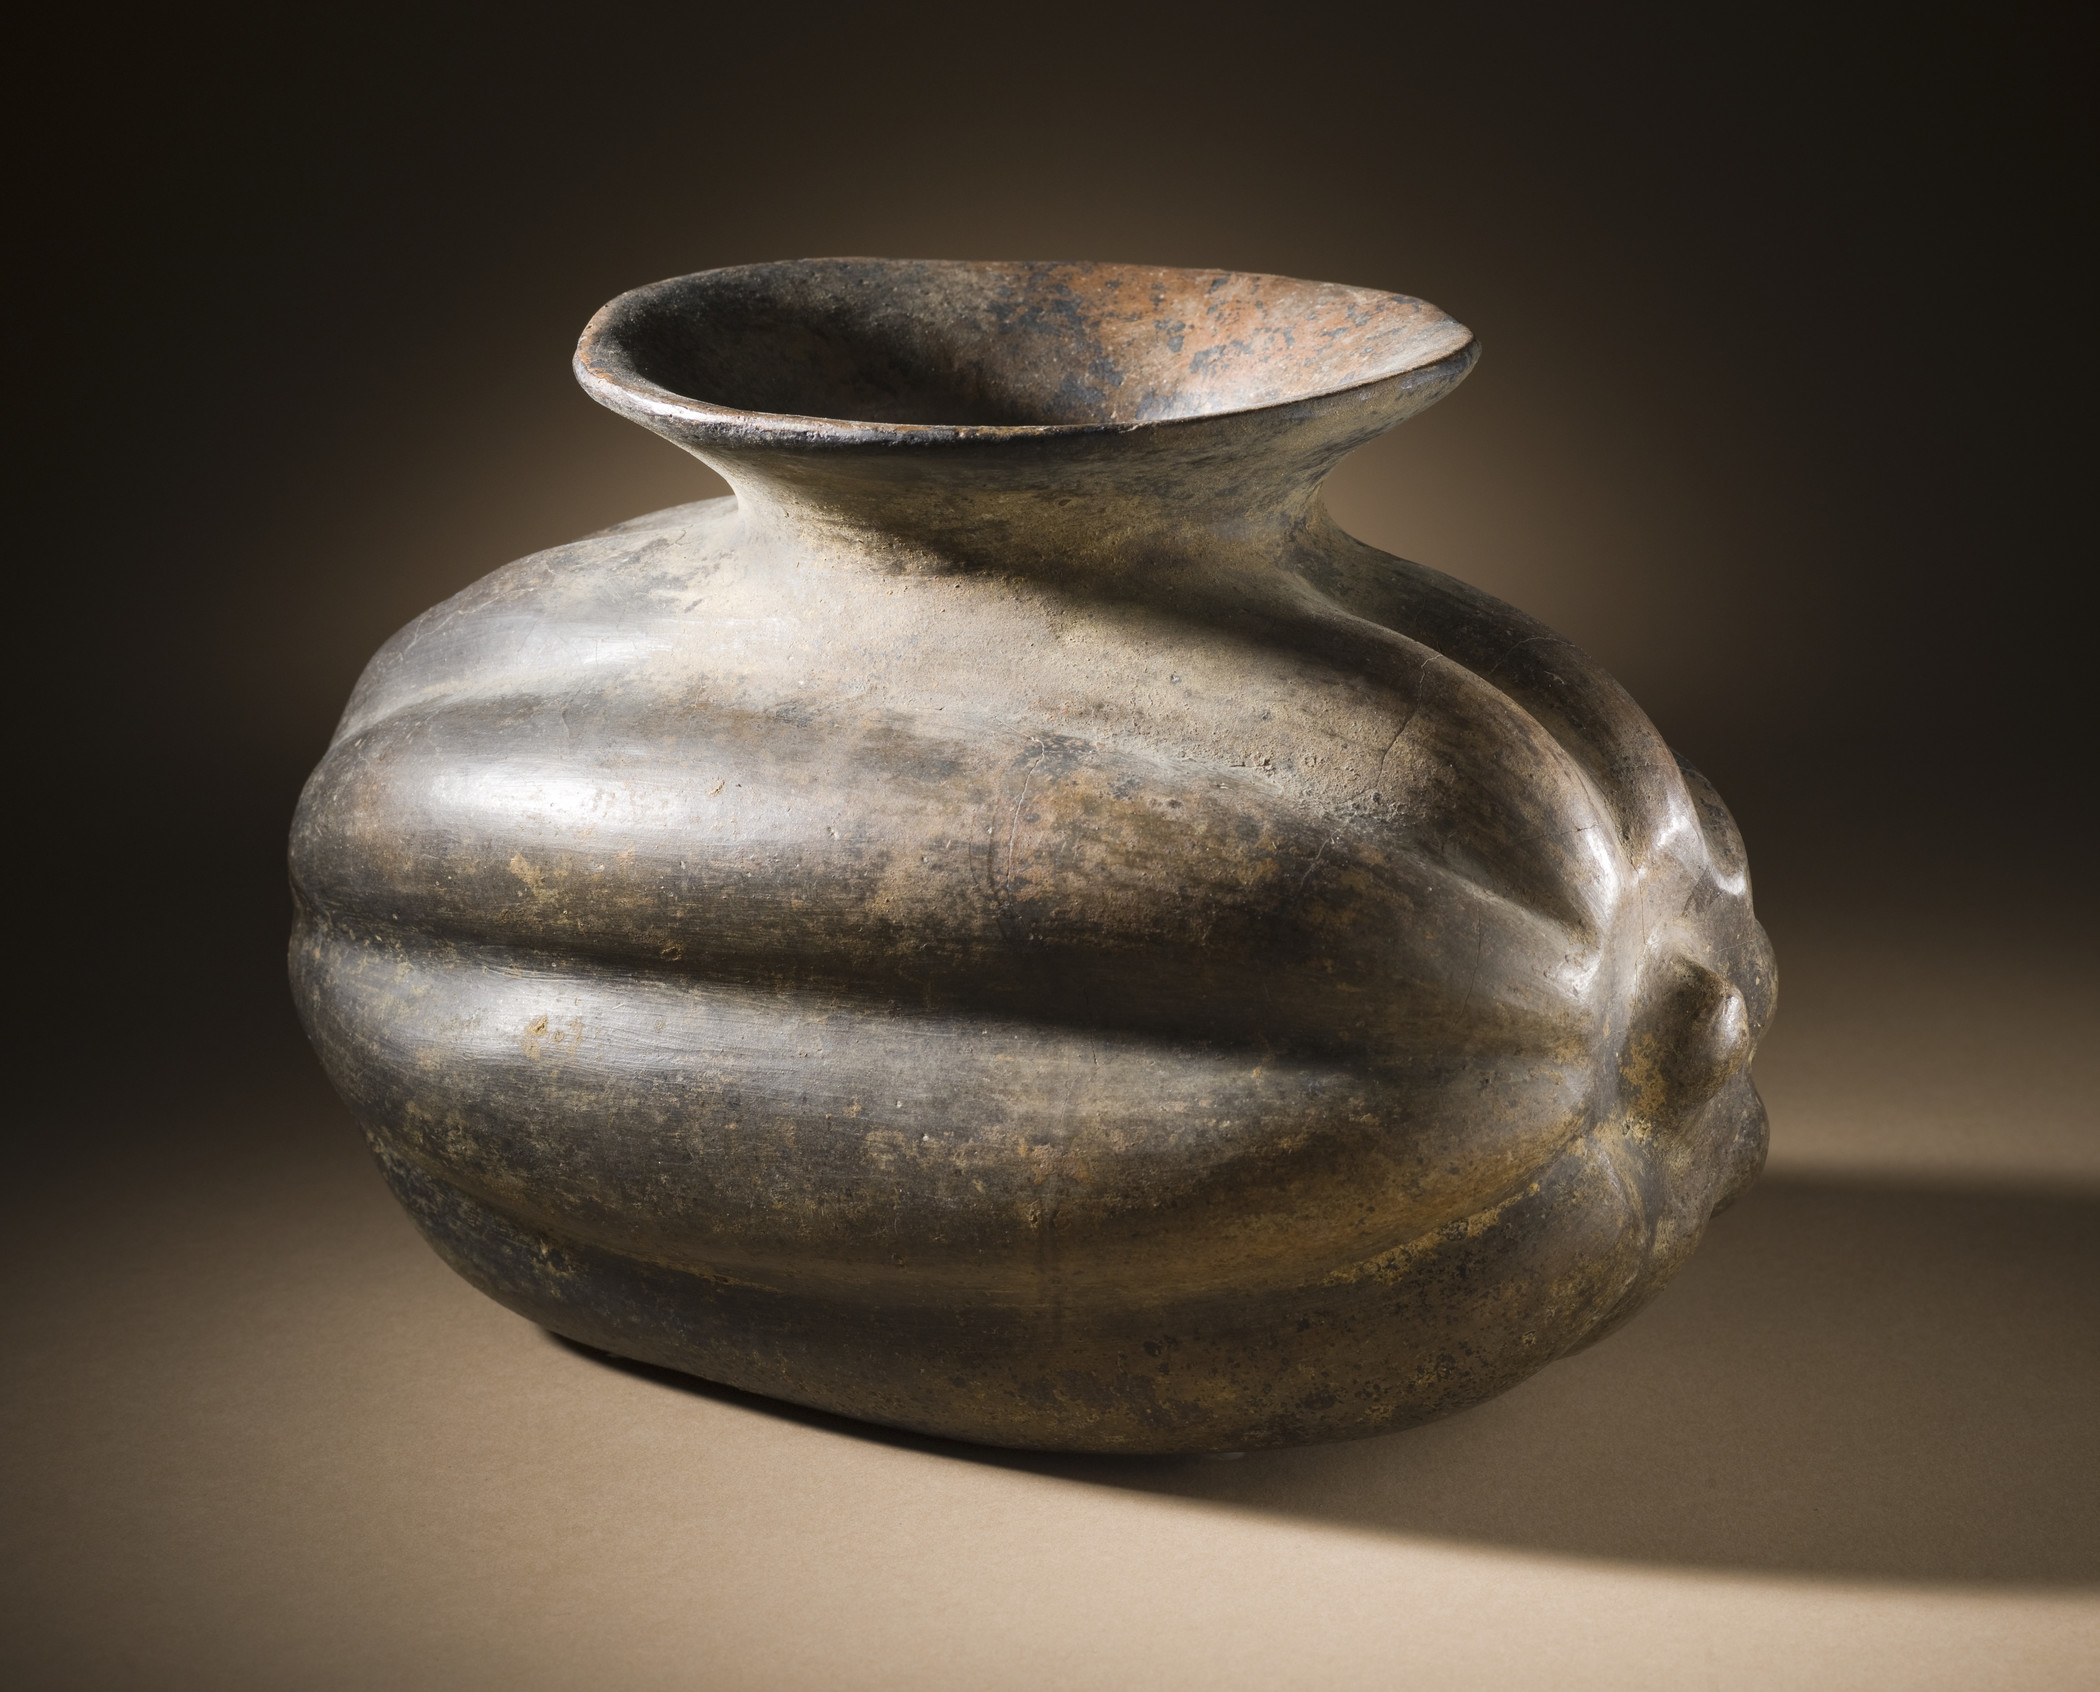 Squash Vessel, Mexico, Colima, 200 BCE–CE 500, Los Angeles County Museum of Art, The Proctor Stafford Collection, purchased with funds provided by Mr. and Mrs. Allan C. Balch, photo © Museum Associates/LACMA